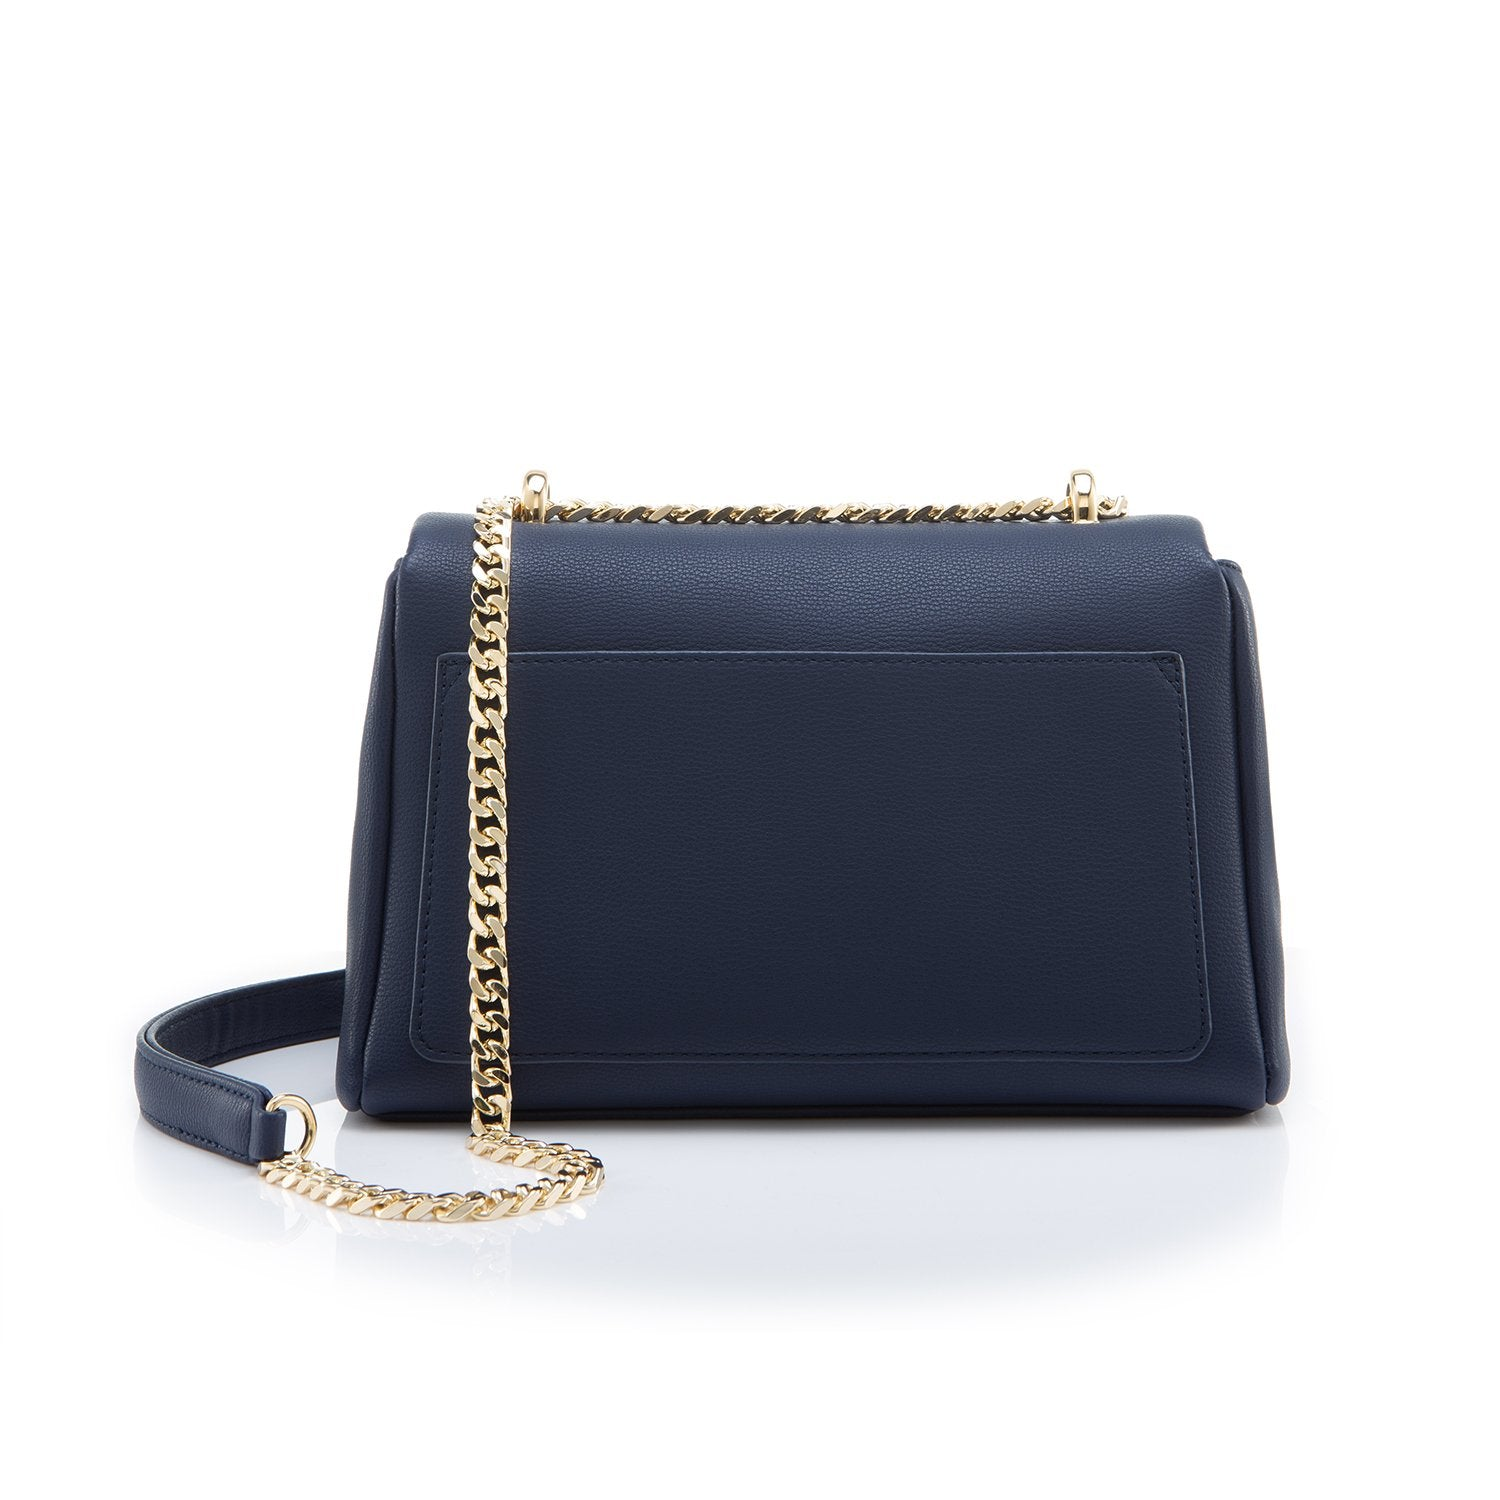 BASTA 2 MINI - NAVY